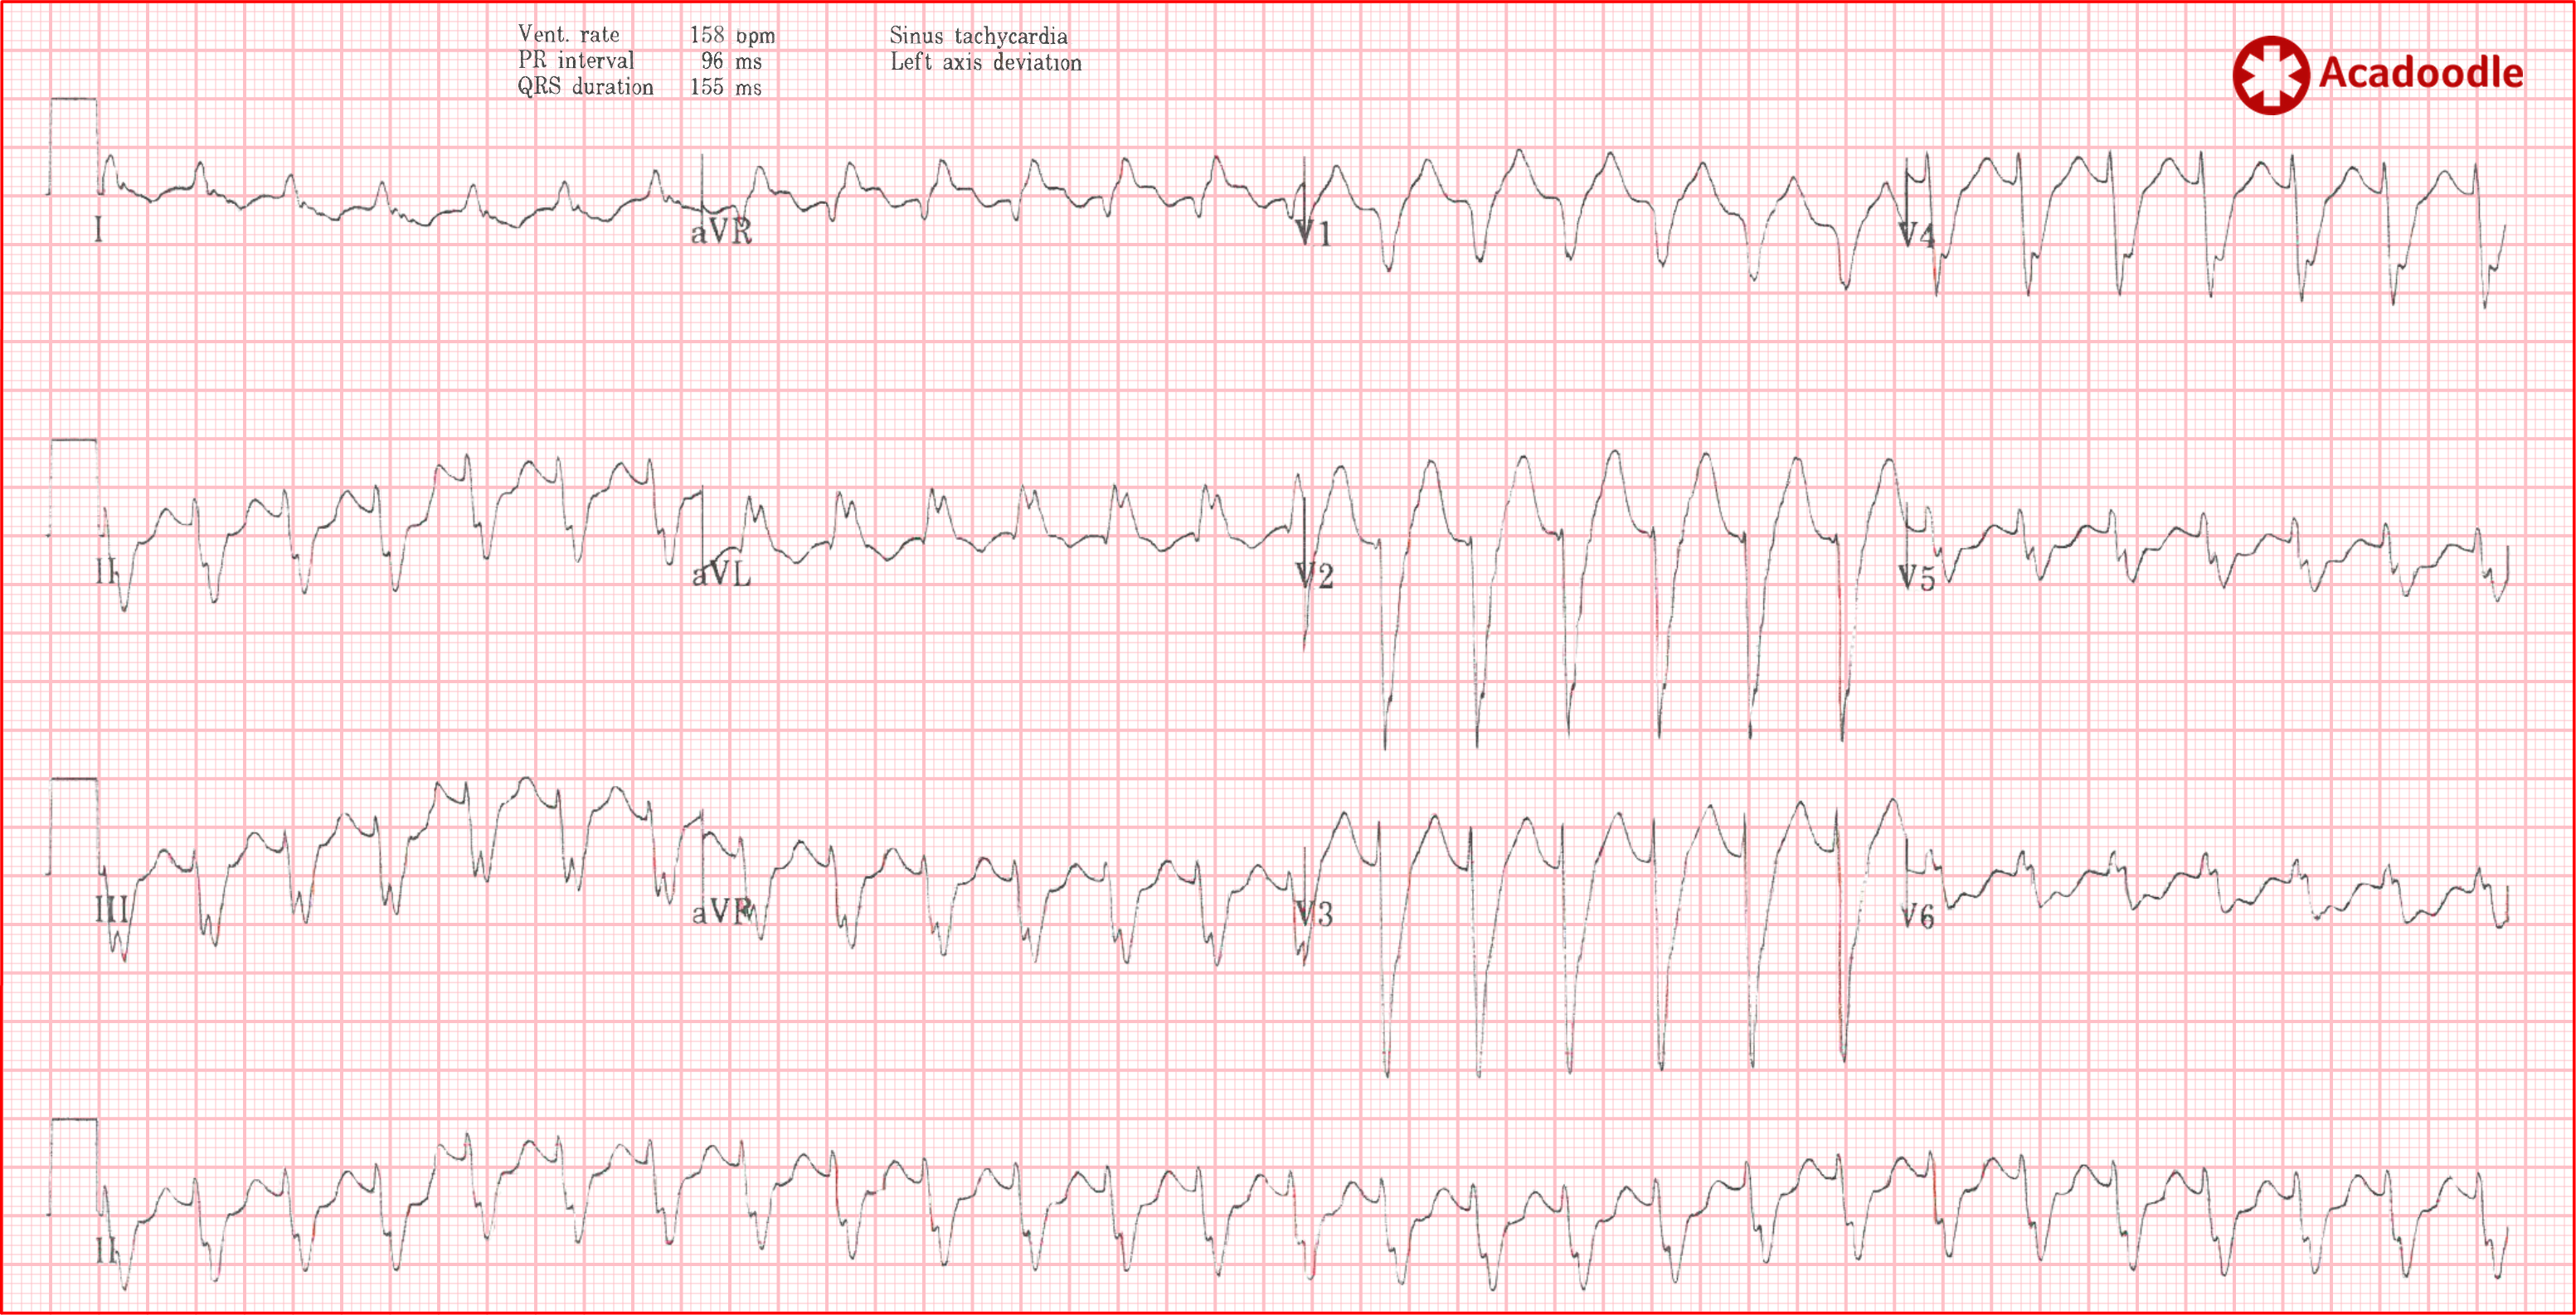 The Mechanism of Atrial Flutter